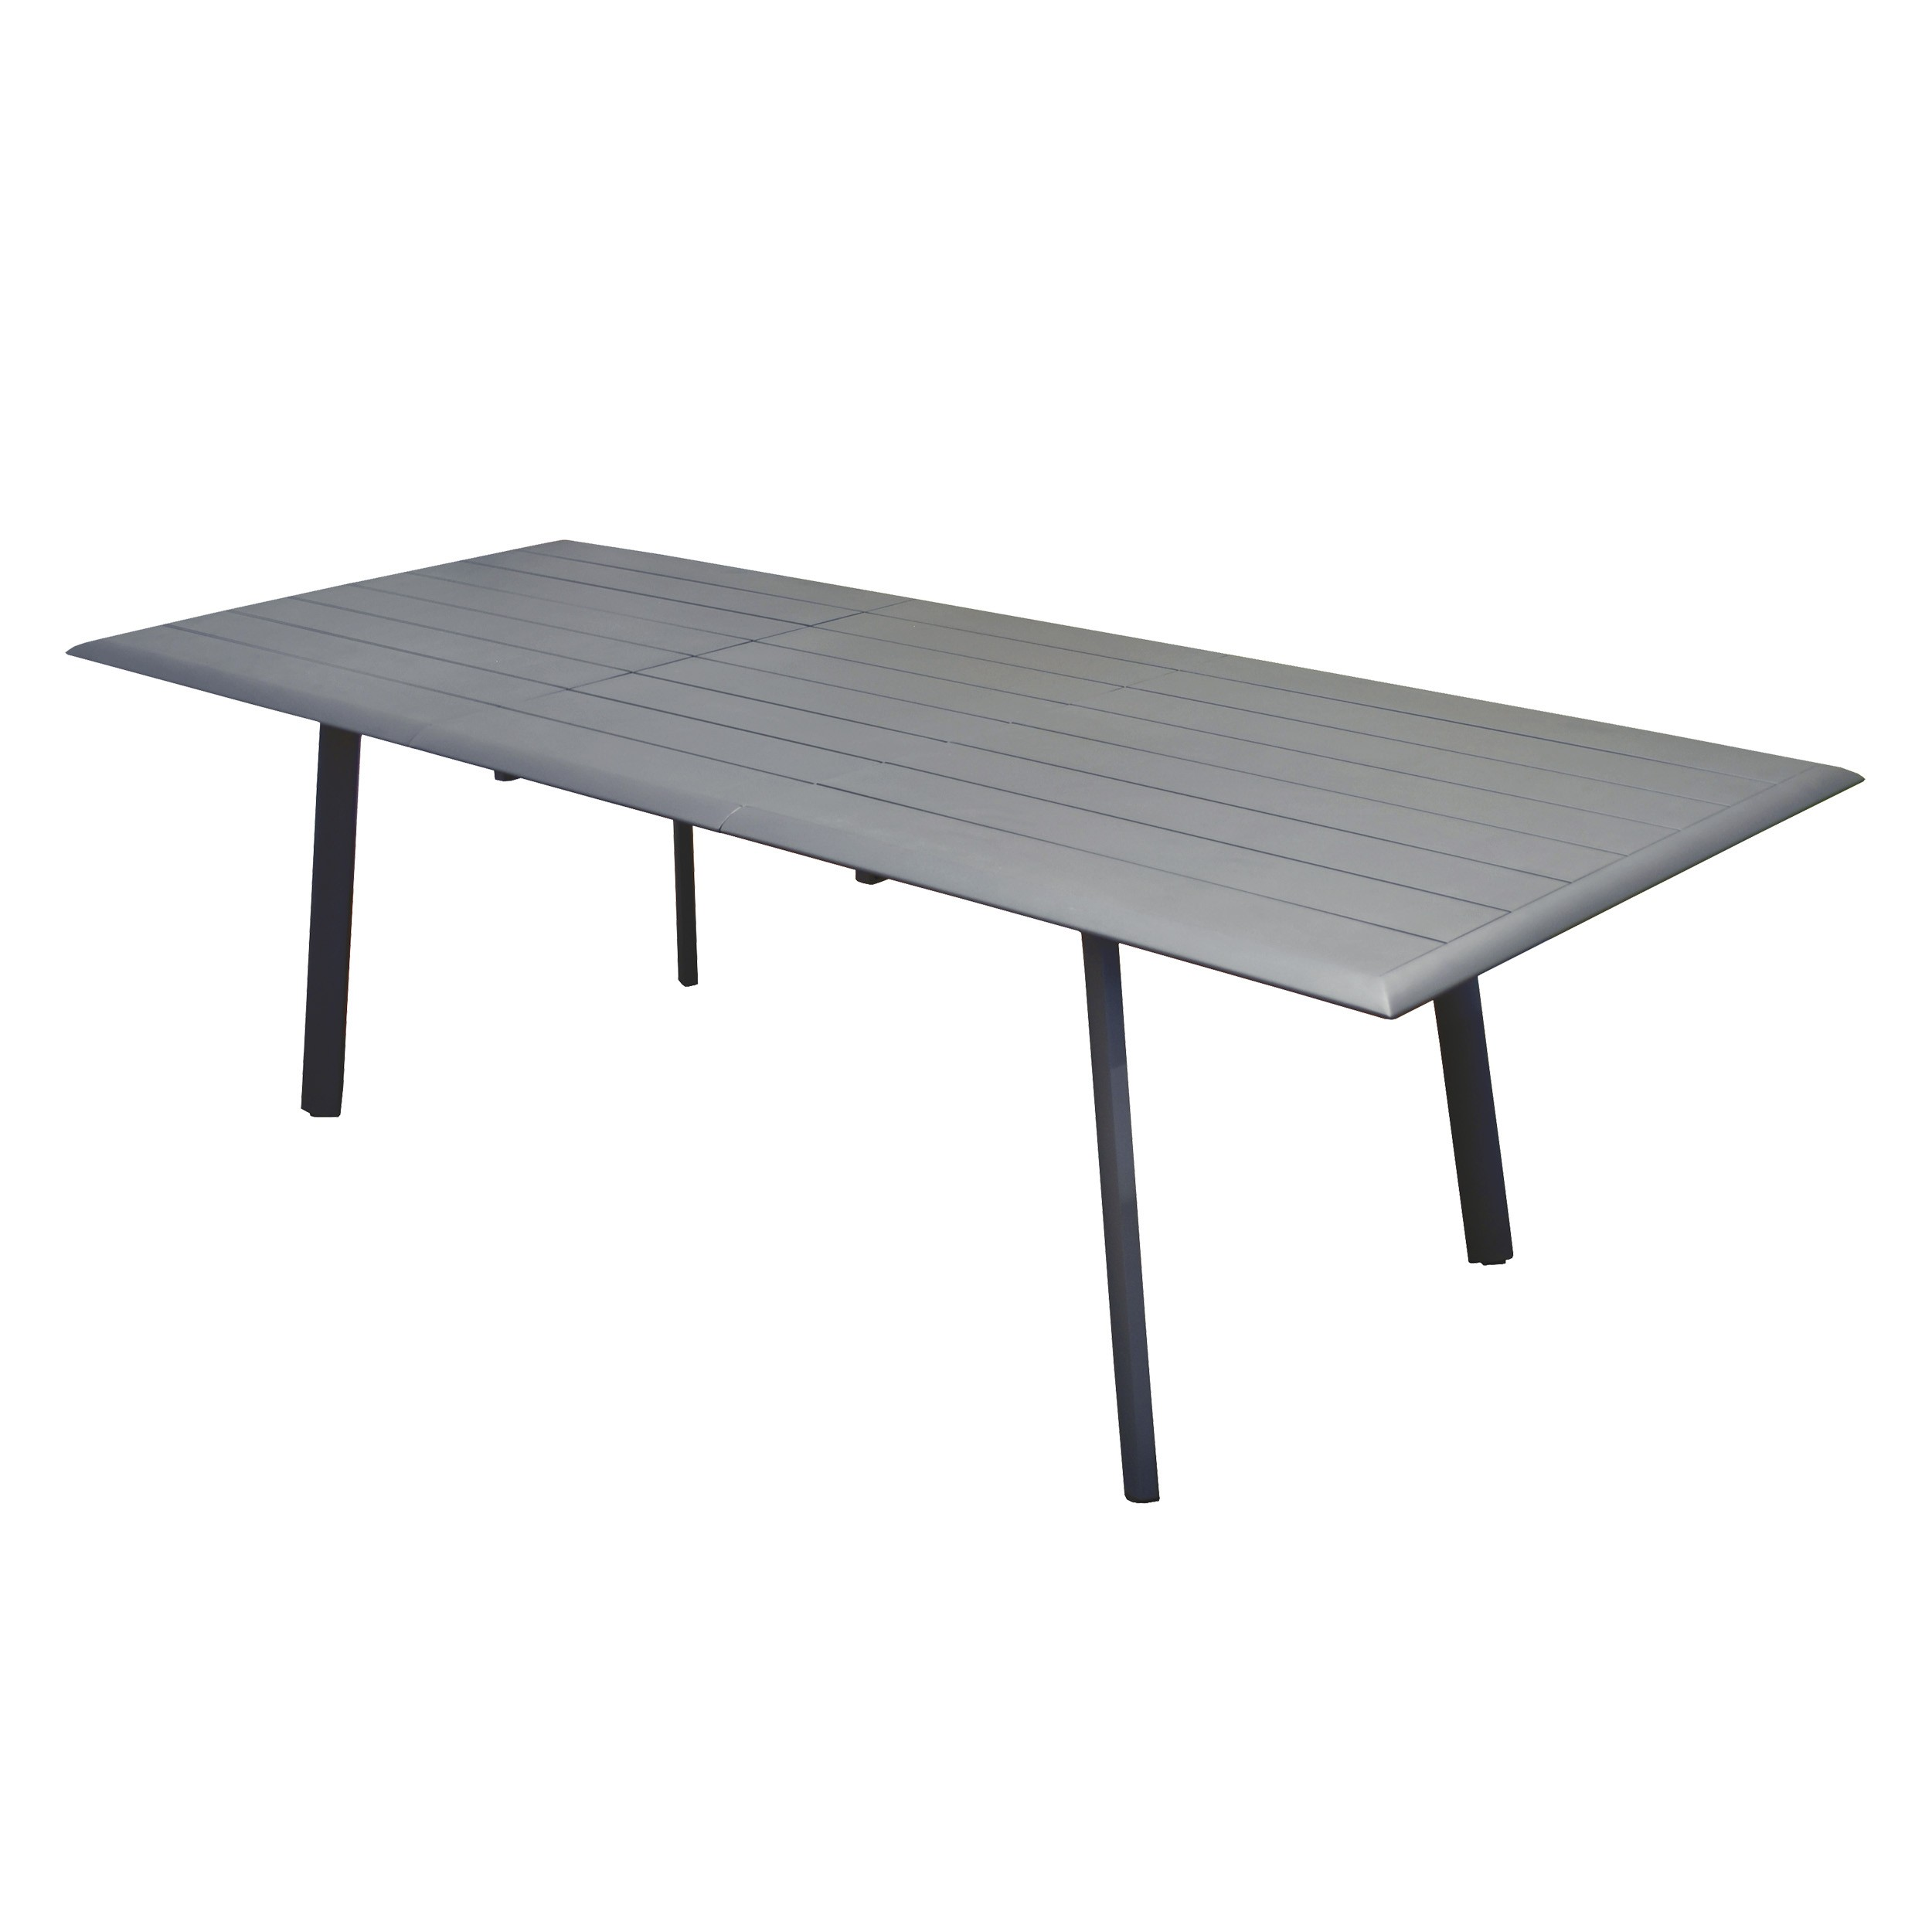 table de jardin extensible 150 cm tampa grise adoptez nos tables de jardin extensibles 150 cm. Black Bedroom Furniture Sets. Home Design Ideas